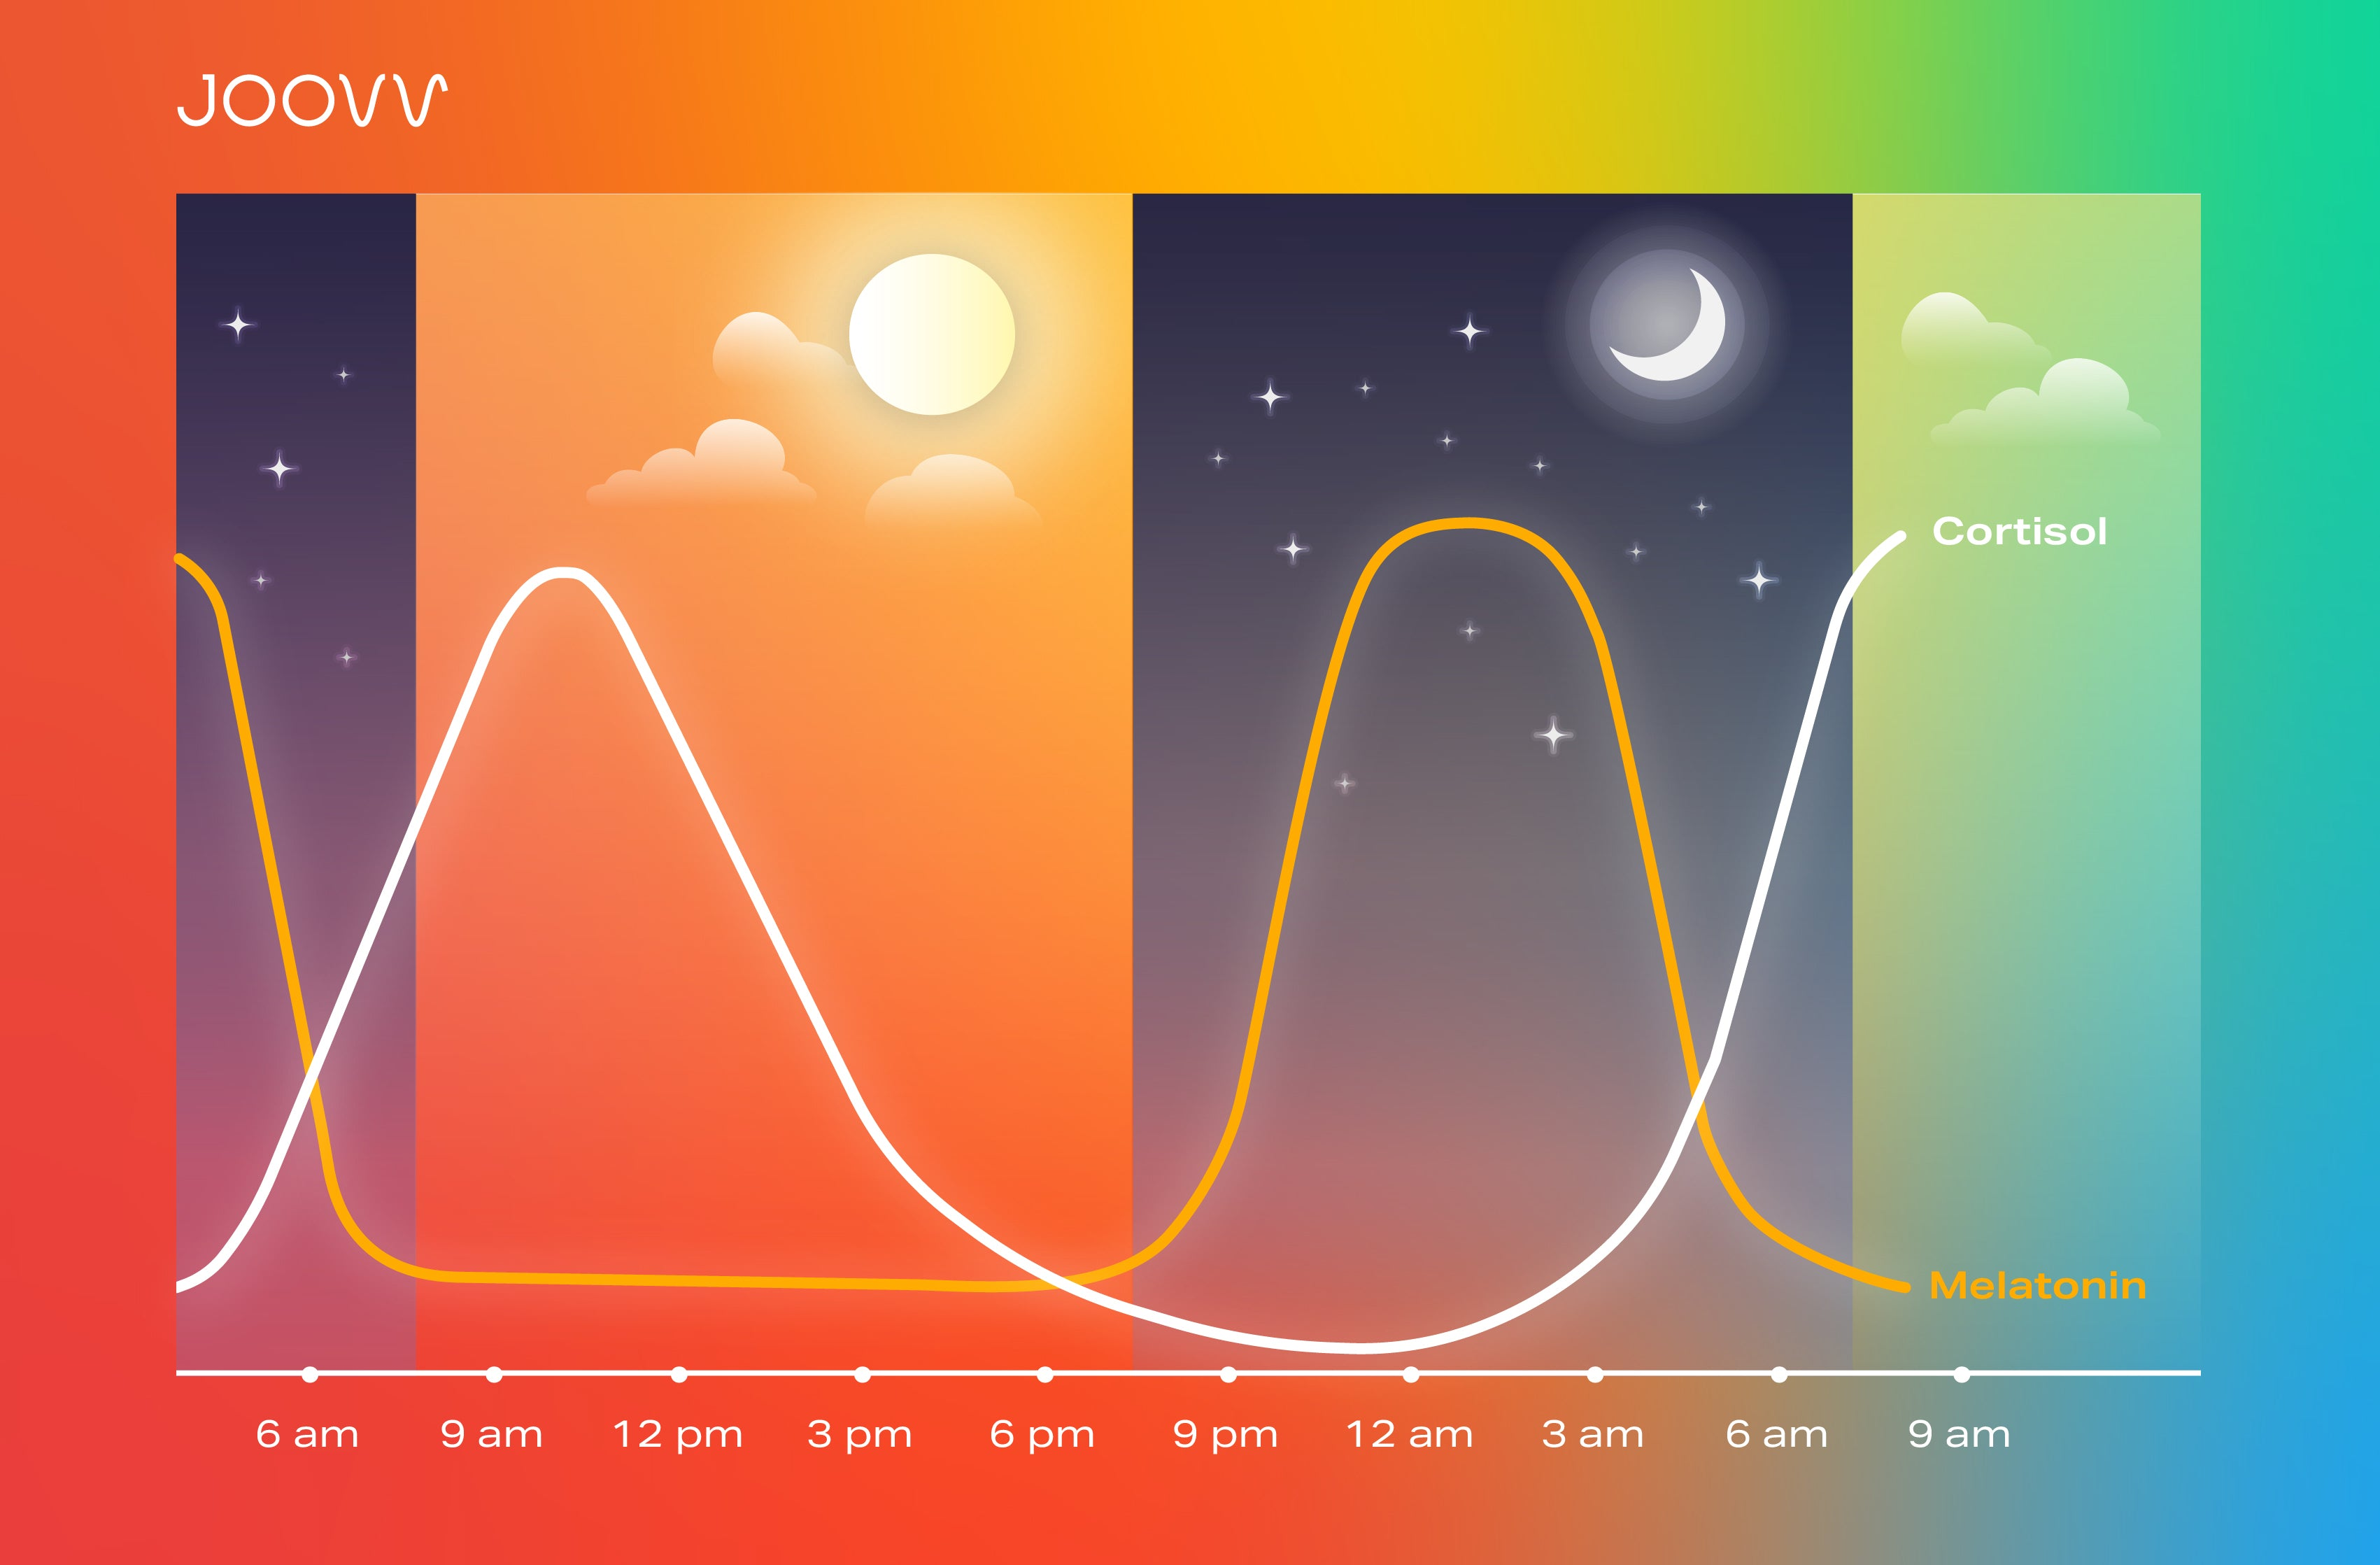 Light intake affects circadian rhythm, which affects our health